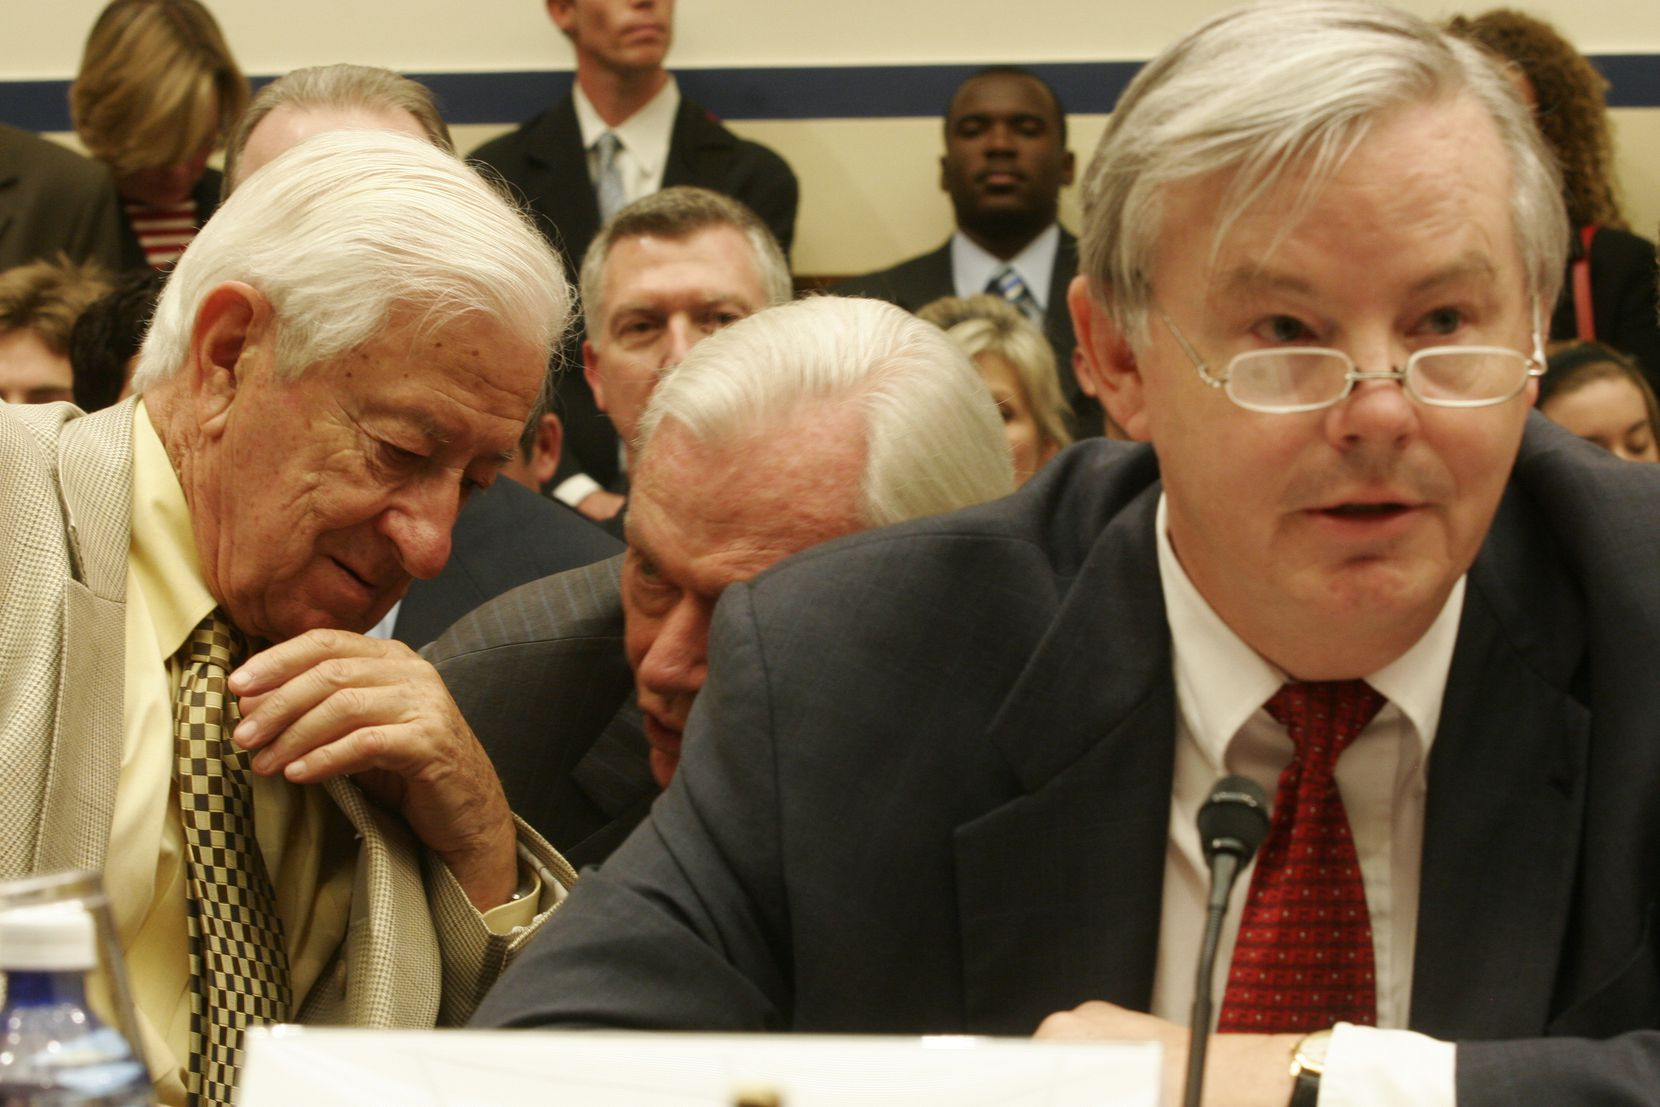 Rep. Ralph Hall (far left) had a word with Herb Kelleher, who was chairman of Southwest Airlines, as Rep. Joe Barton gave a statement during the House Committee on Transportation and Infrastructure's Subcommittee on Aviation hearing on reforming the Wright Amendment on July 12, 2006.